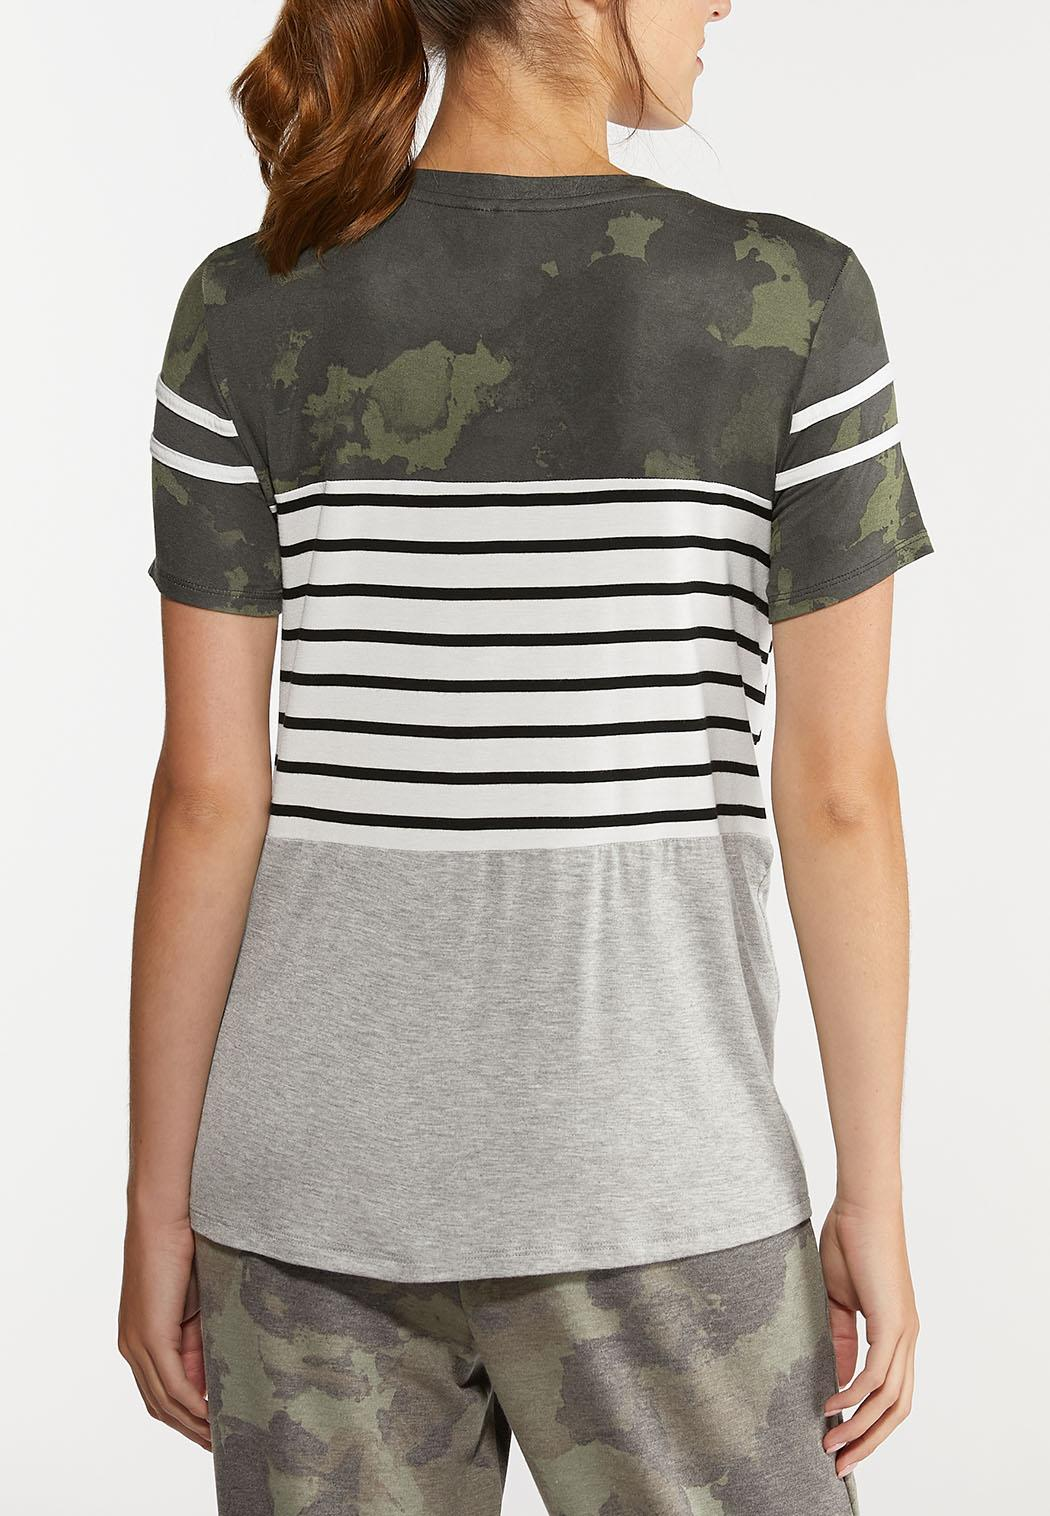 Plus Size Camo Stripe Knotted Tee (Item #44300162)